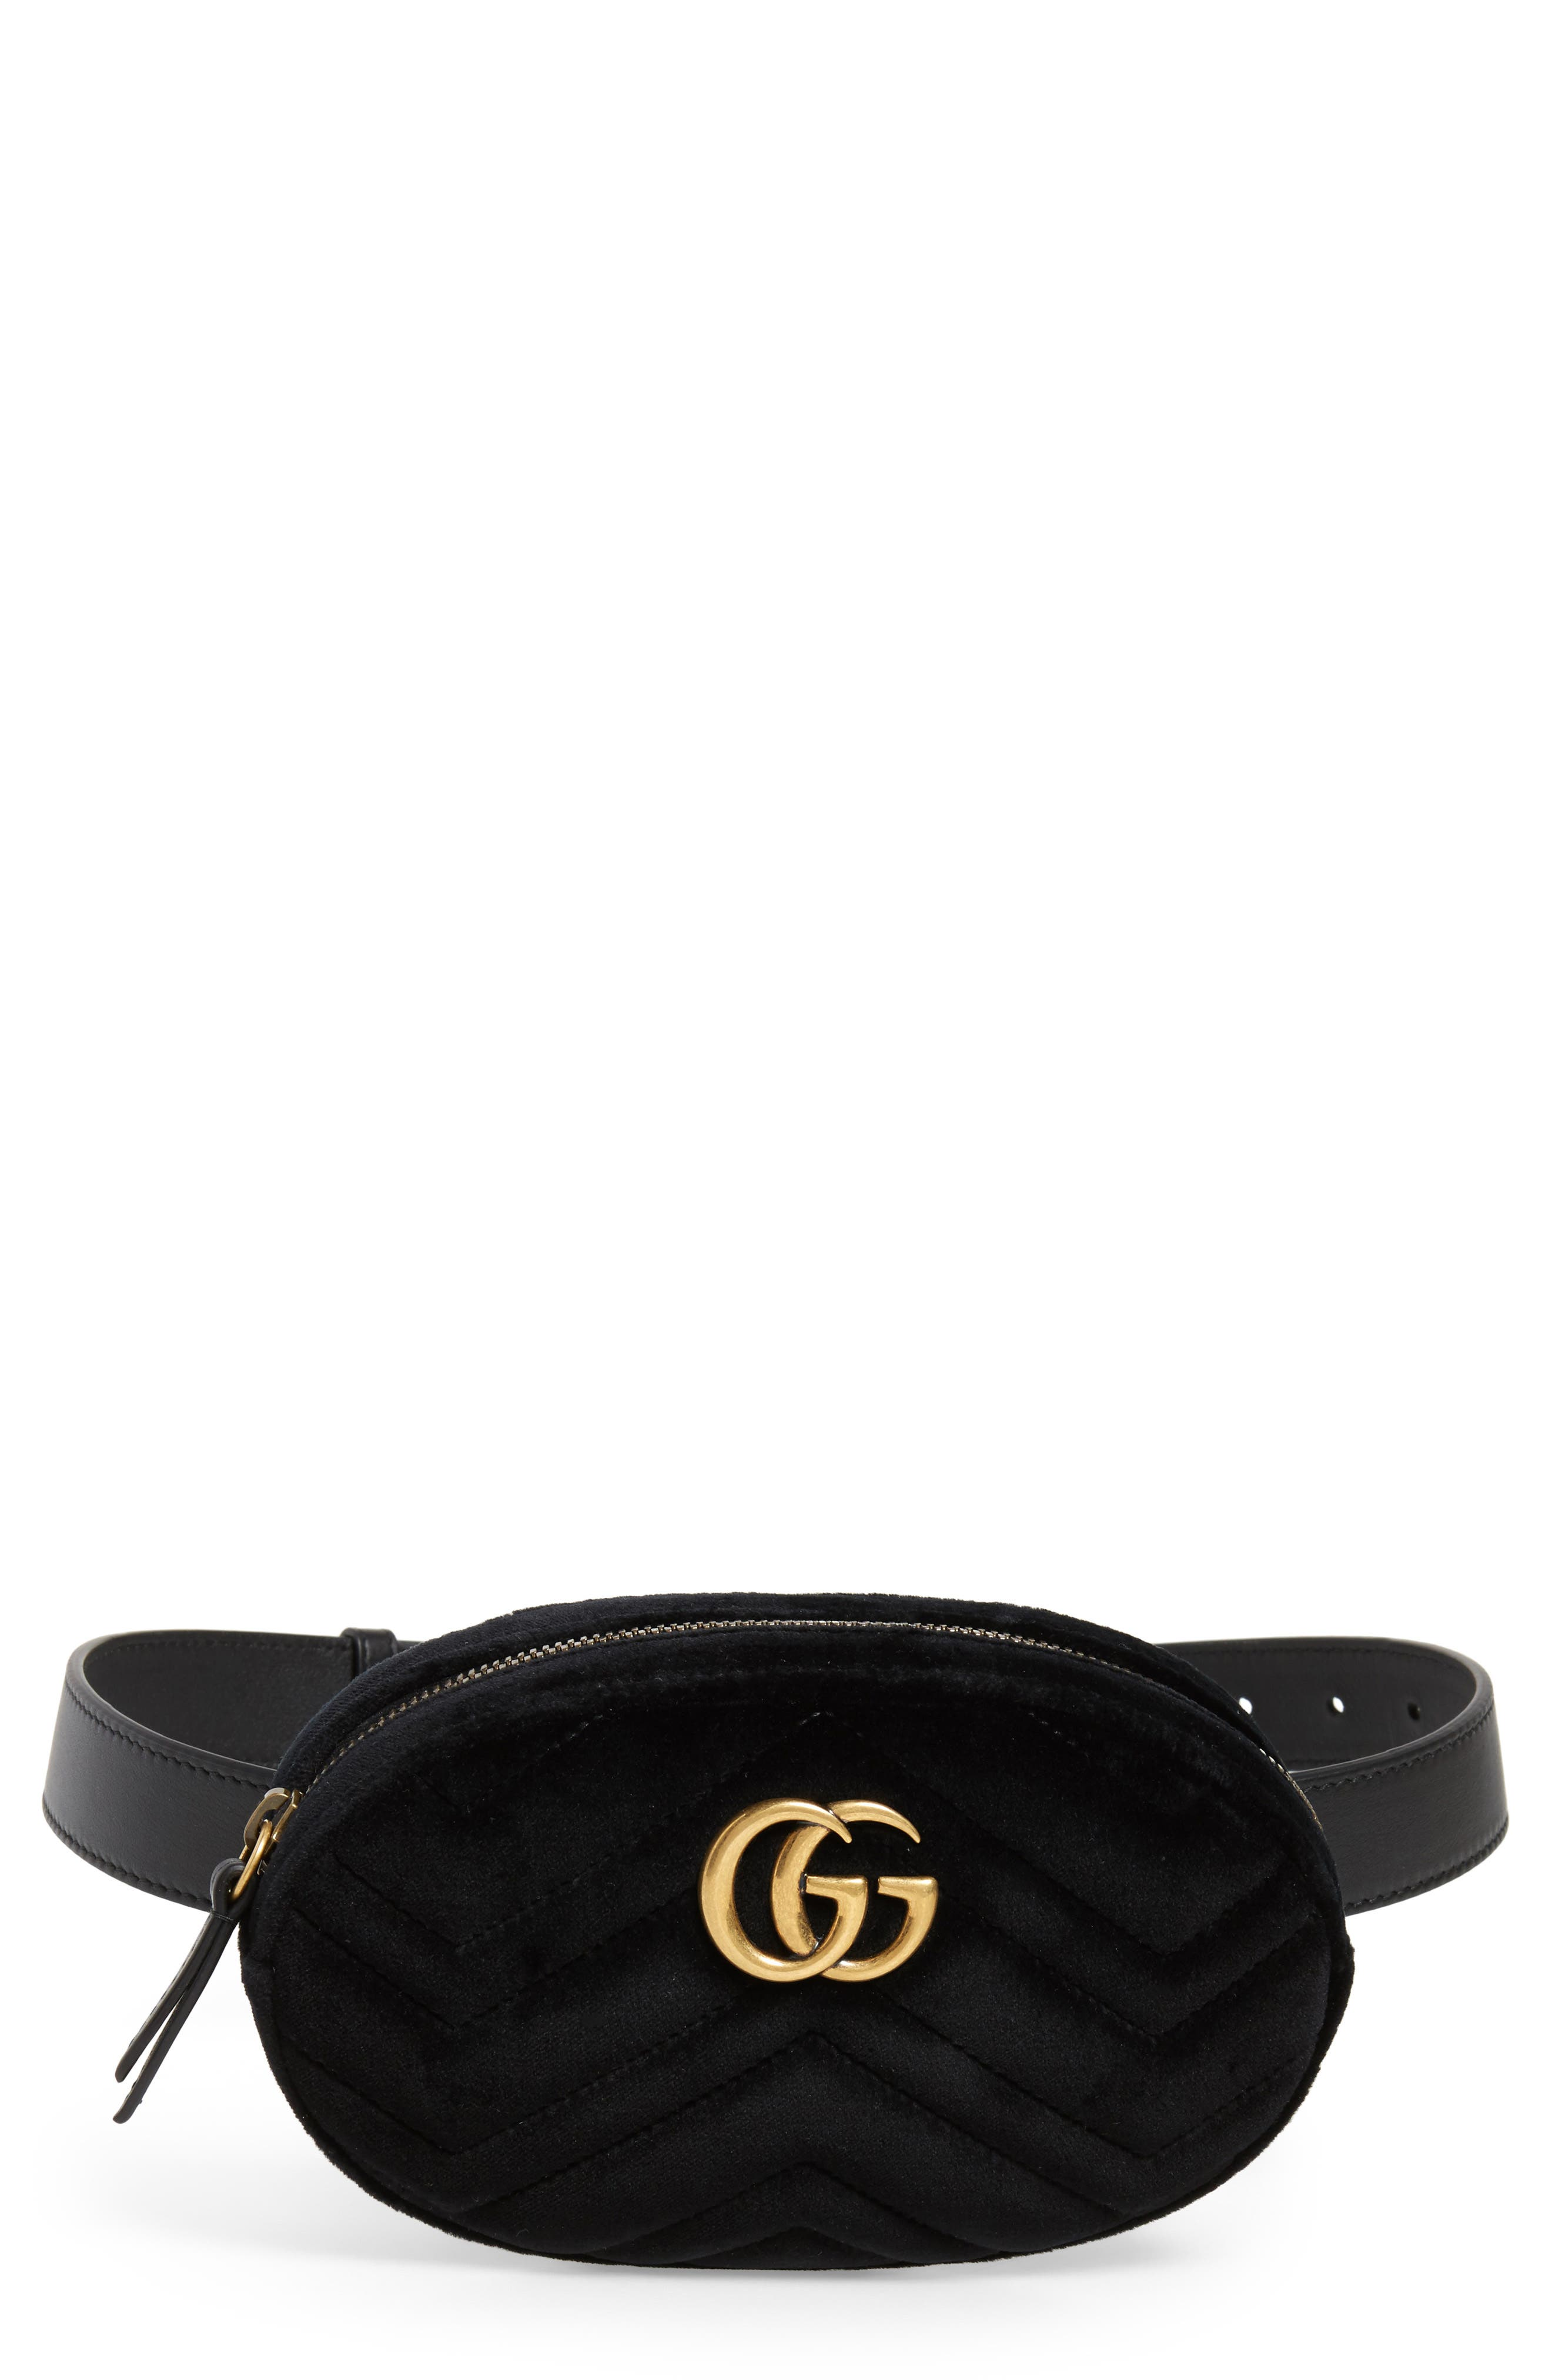 16e9c86db3d4 belt bag | Nordstrom